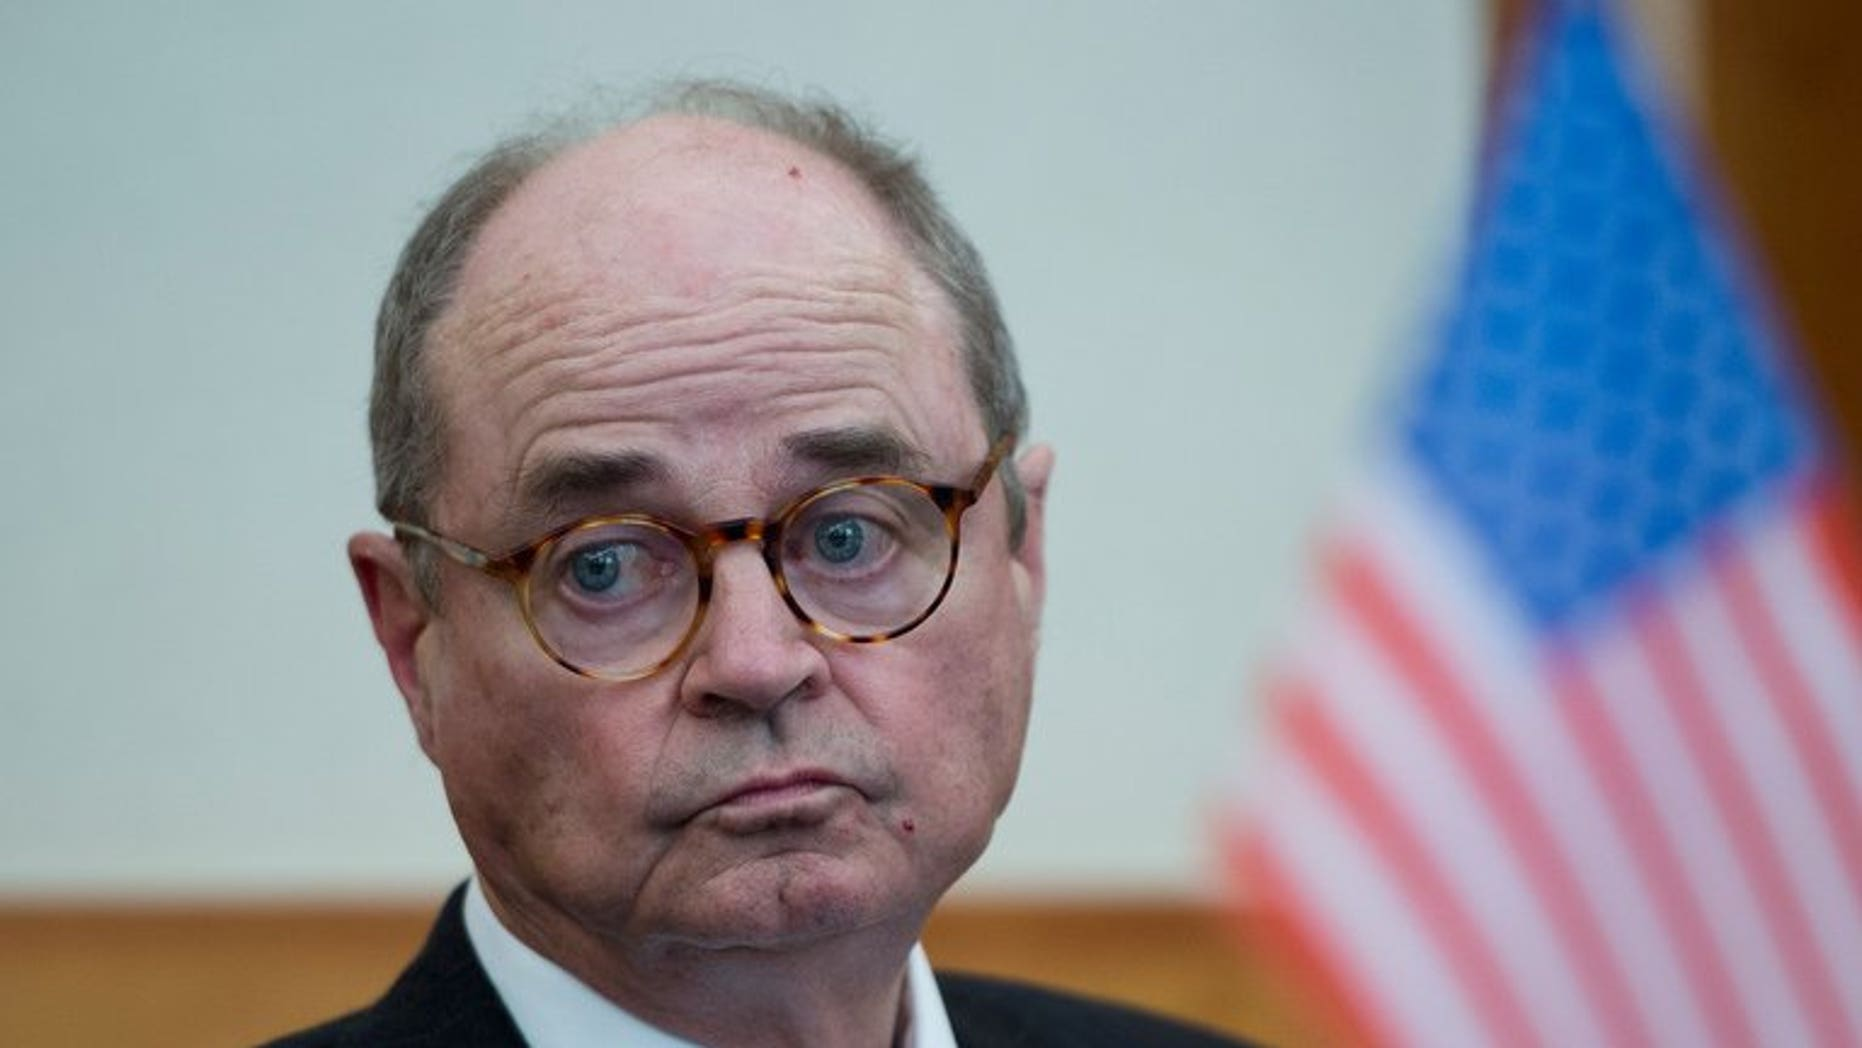 James Dobbins, the US special representative on Afghanistan and Pakistan, addresses a press conference in Berlin on May 14, 2013. State Department officials said that they did not have a timeline for when Dobbins will start potential talks with the Taliban.